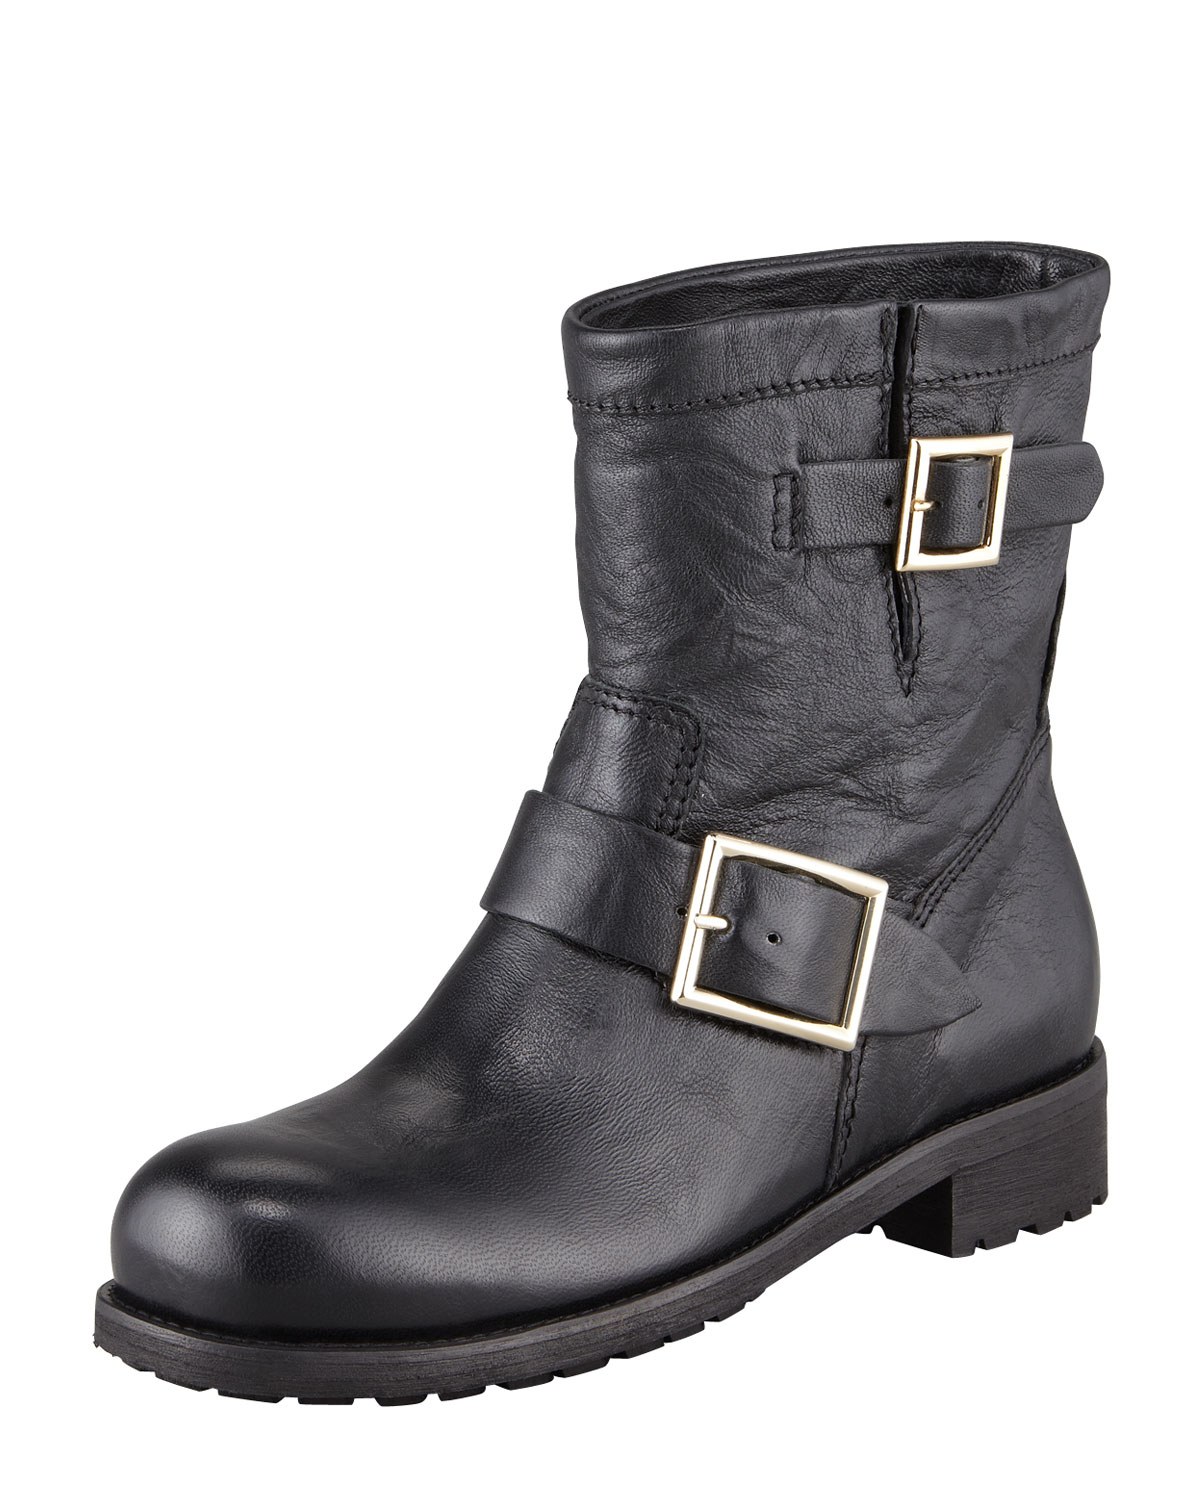 80049e64b11 Jimmy Choo Youth Buckled Biker Boots